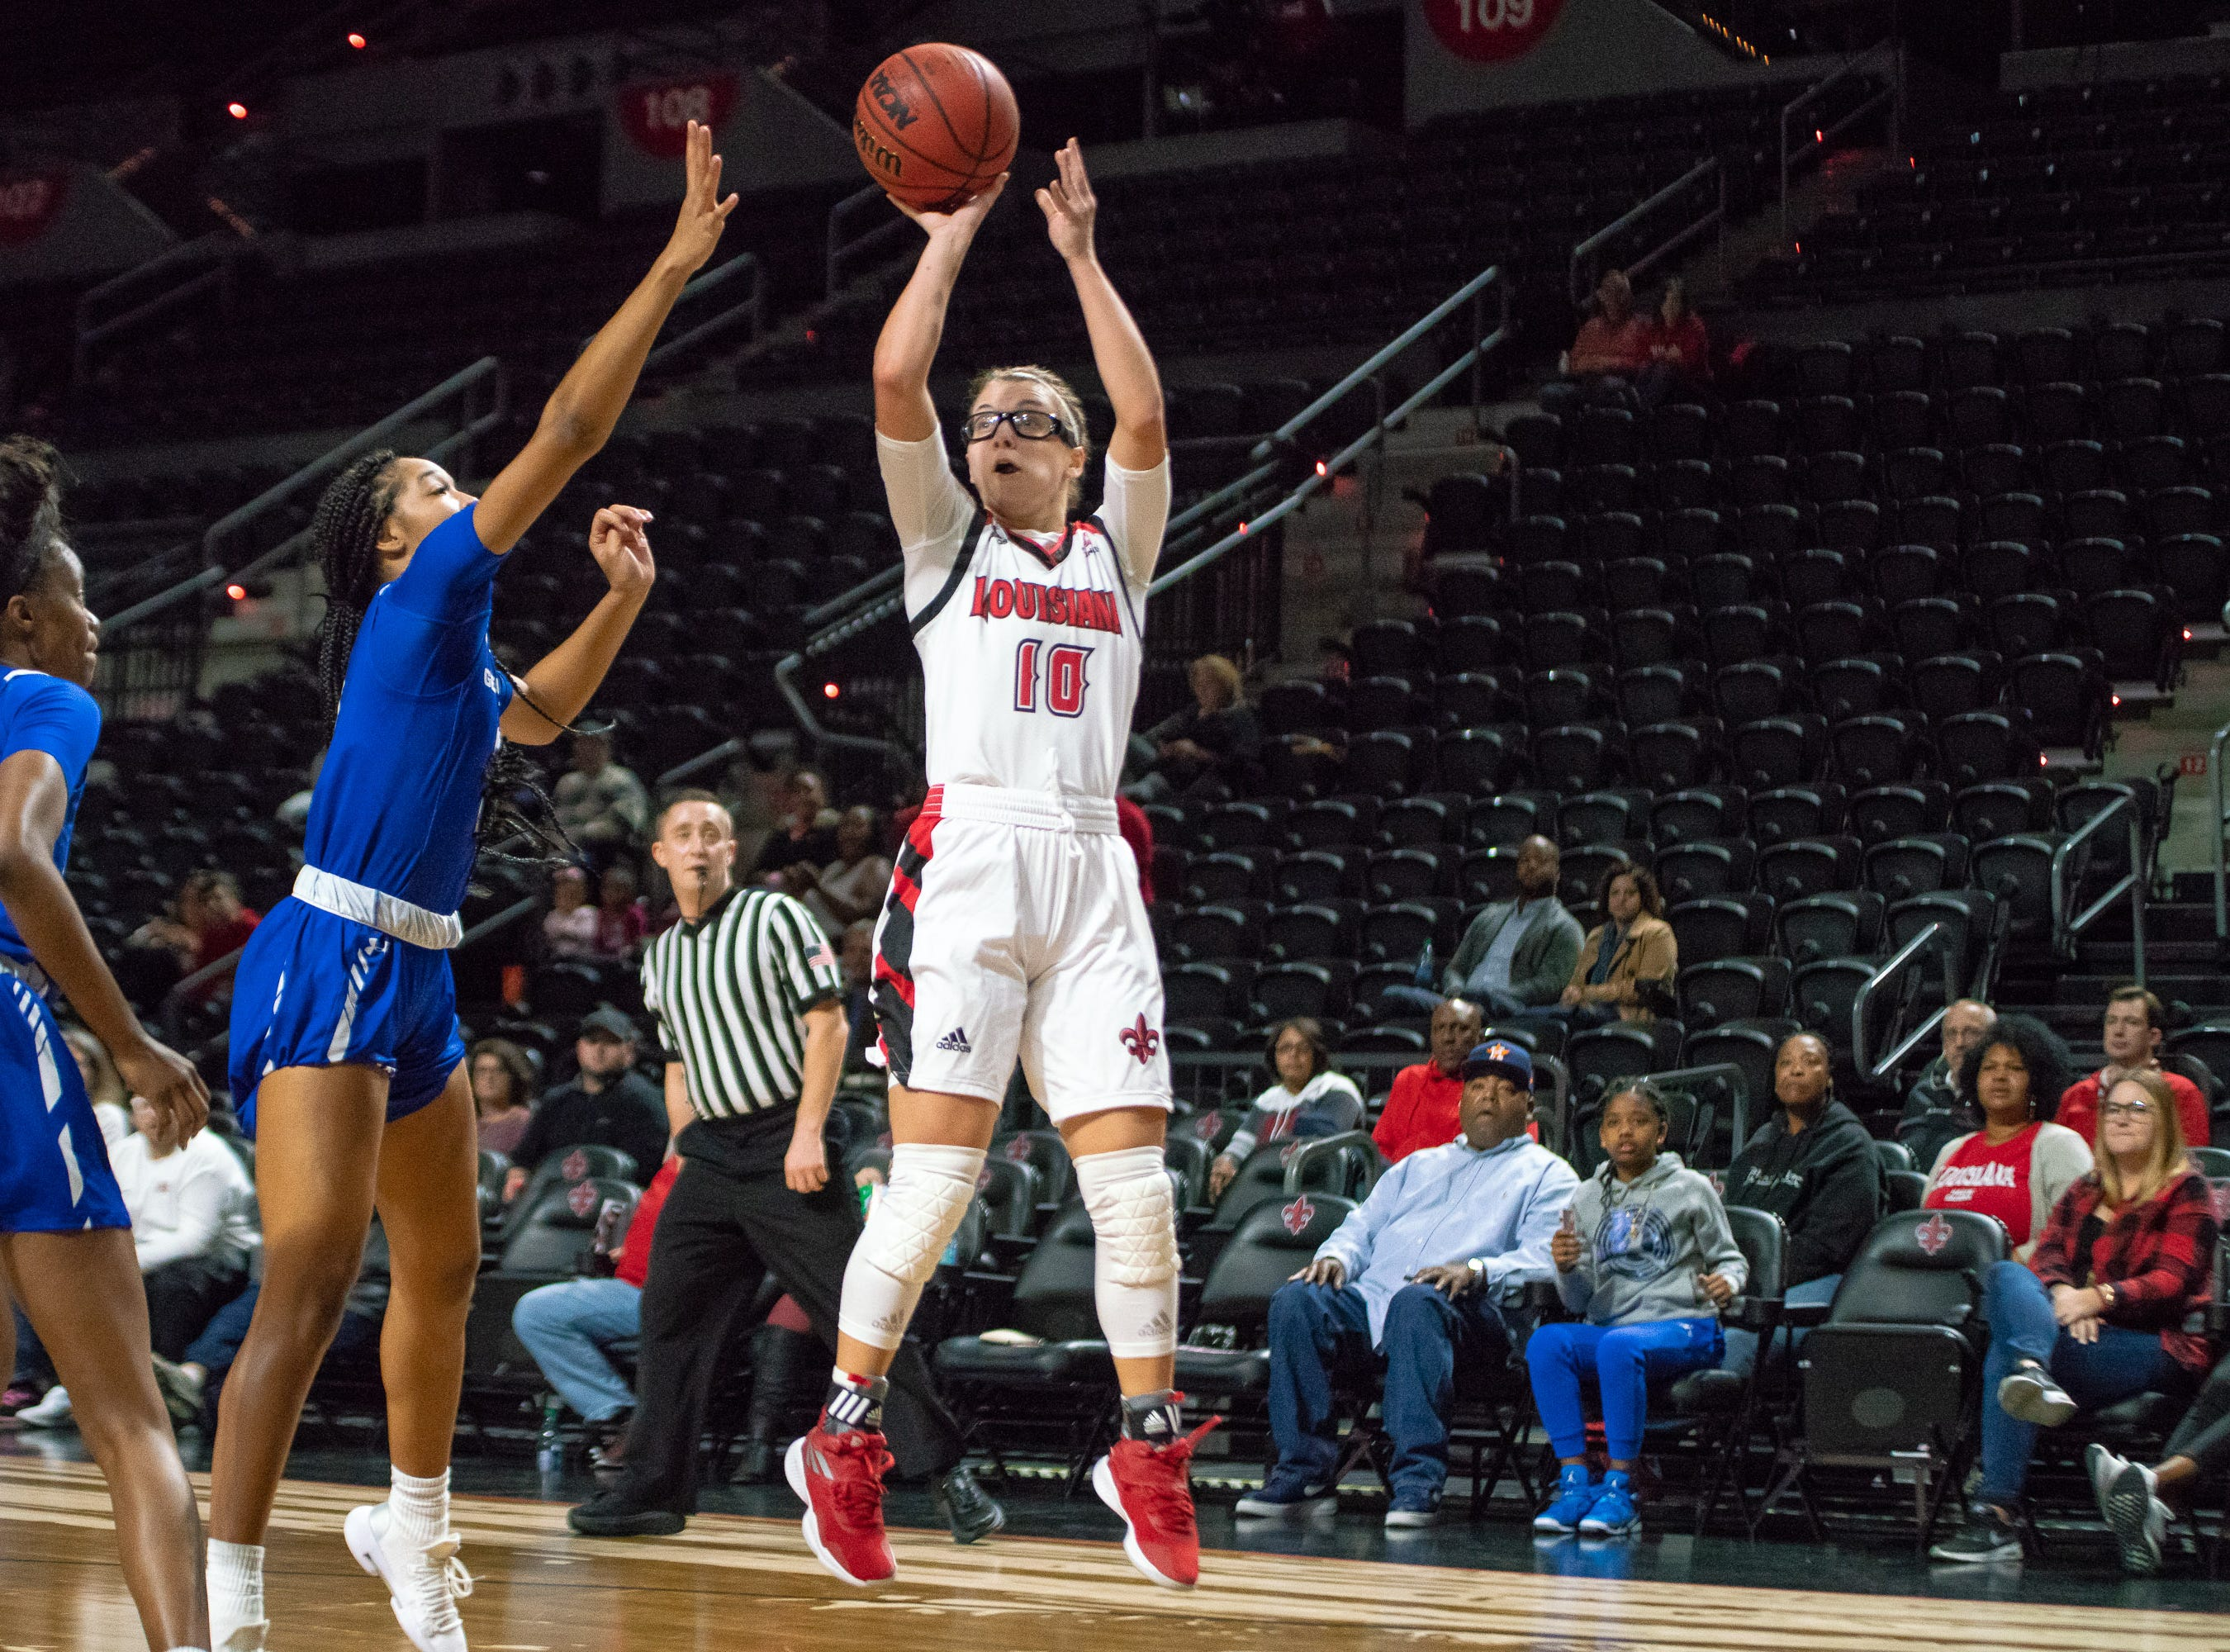 UL's Andrea Cournoyer shoots the ball to score as the Ragin' Cajuns play against the Georgia State Panthers at the Cajundome on January 10, 2019.